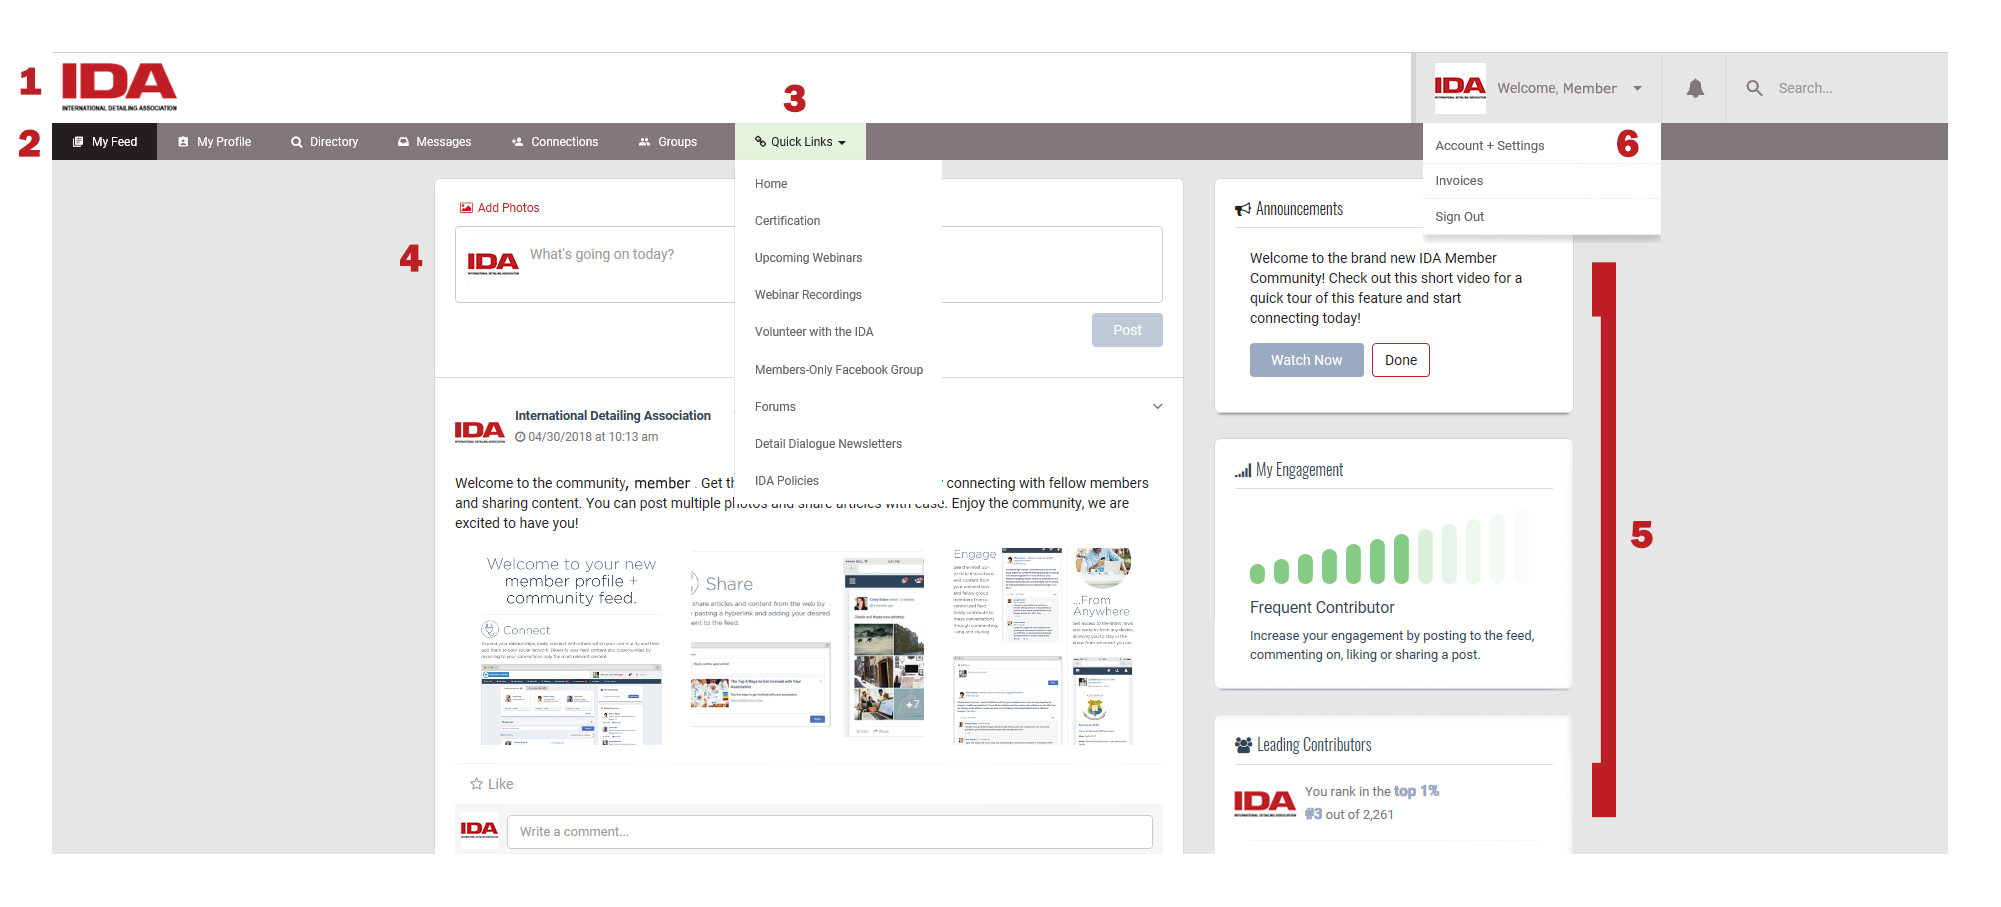 IDA Website Spotlight: Navigating Your New Member Dashboard